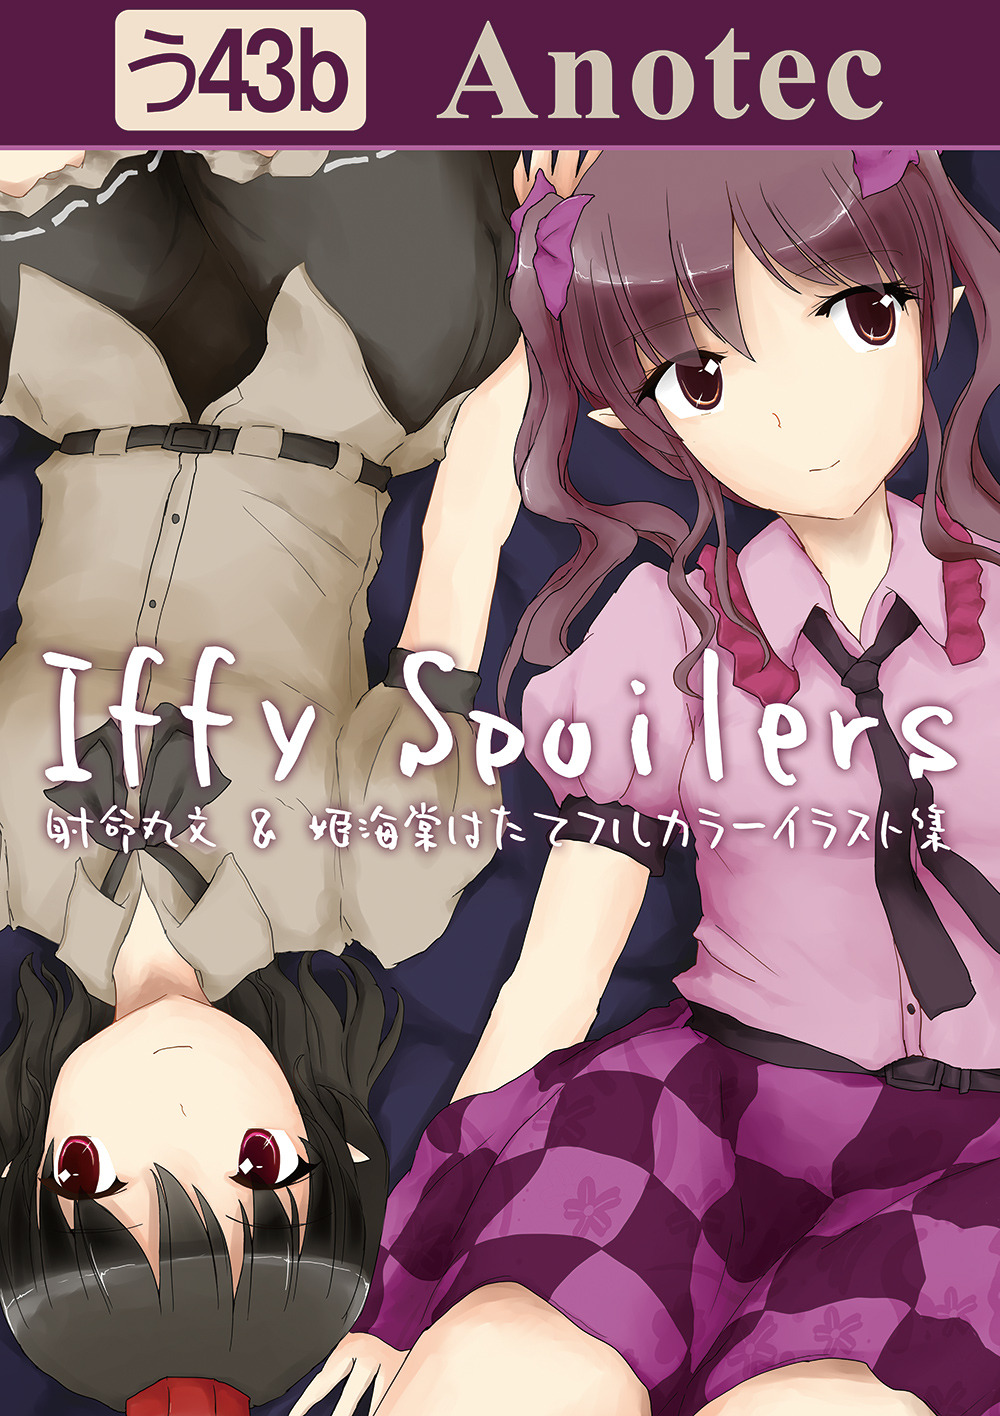 Iffy Spoilers表紙